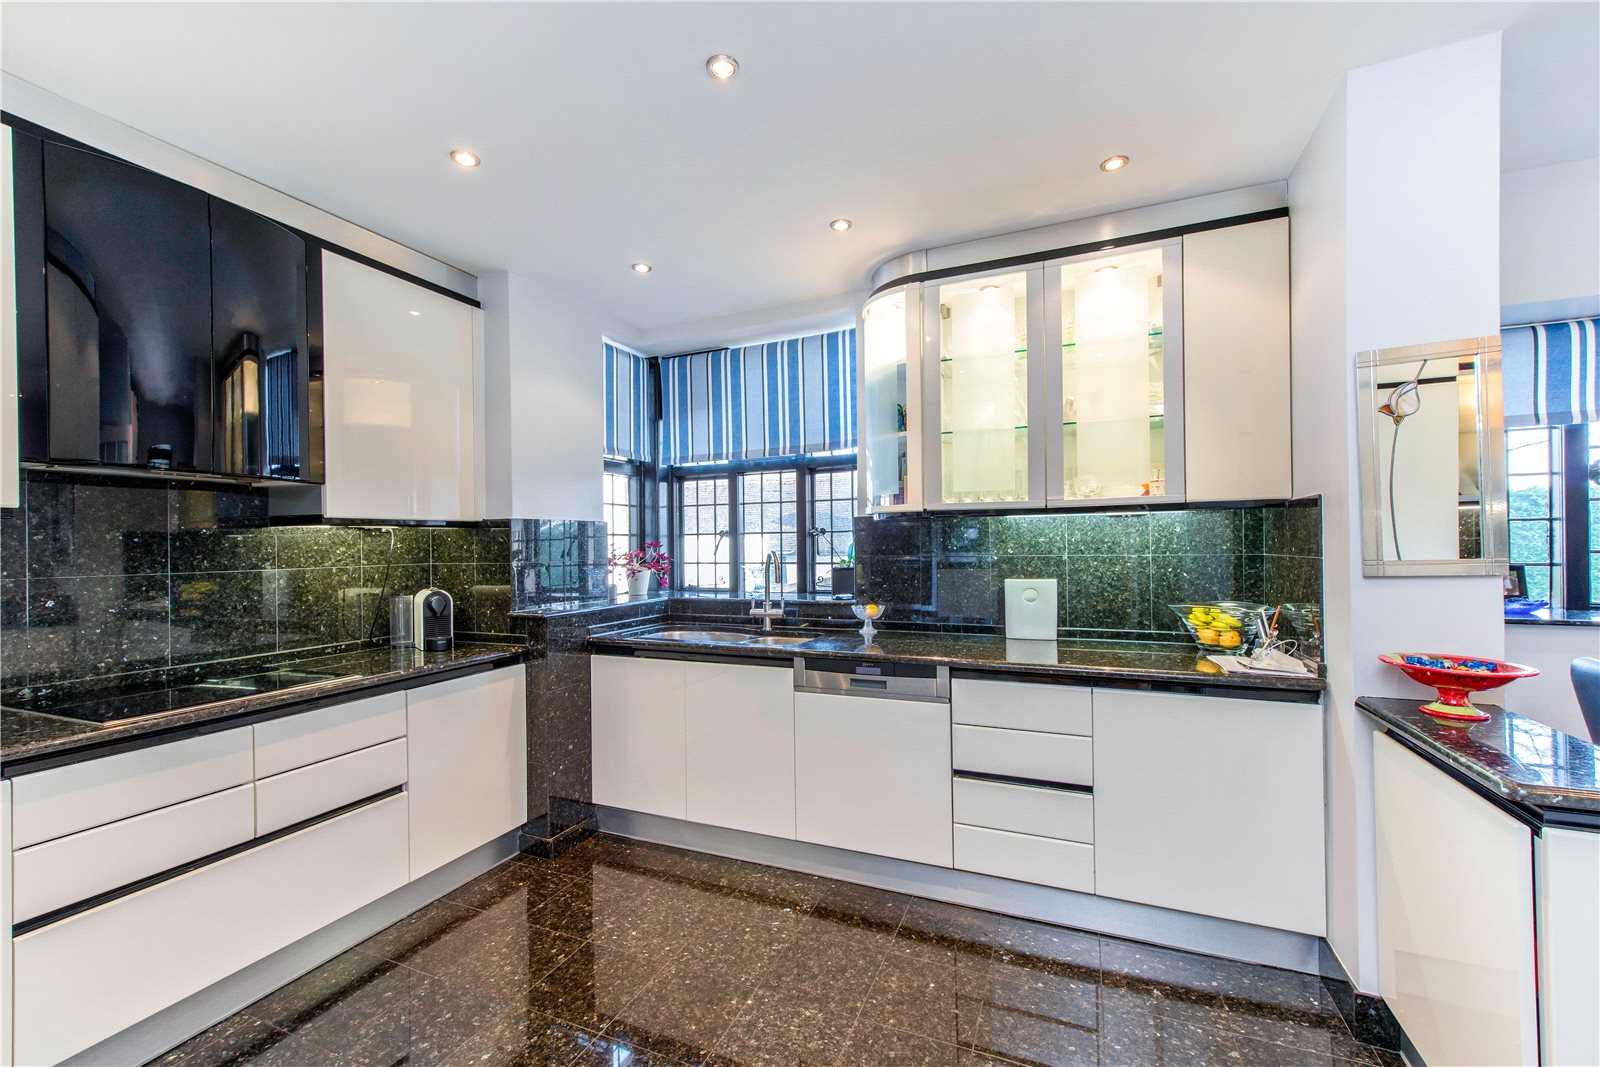 Additional photo for property listing at Fulmer Chase, Stoke Common Road, Fulmer, Buckinghamshire, SL3 Fulmer, Ingiltere